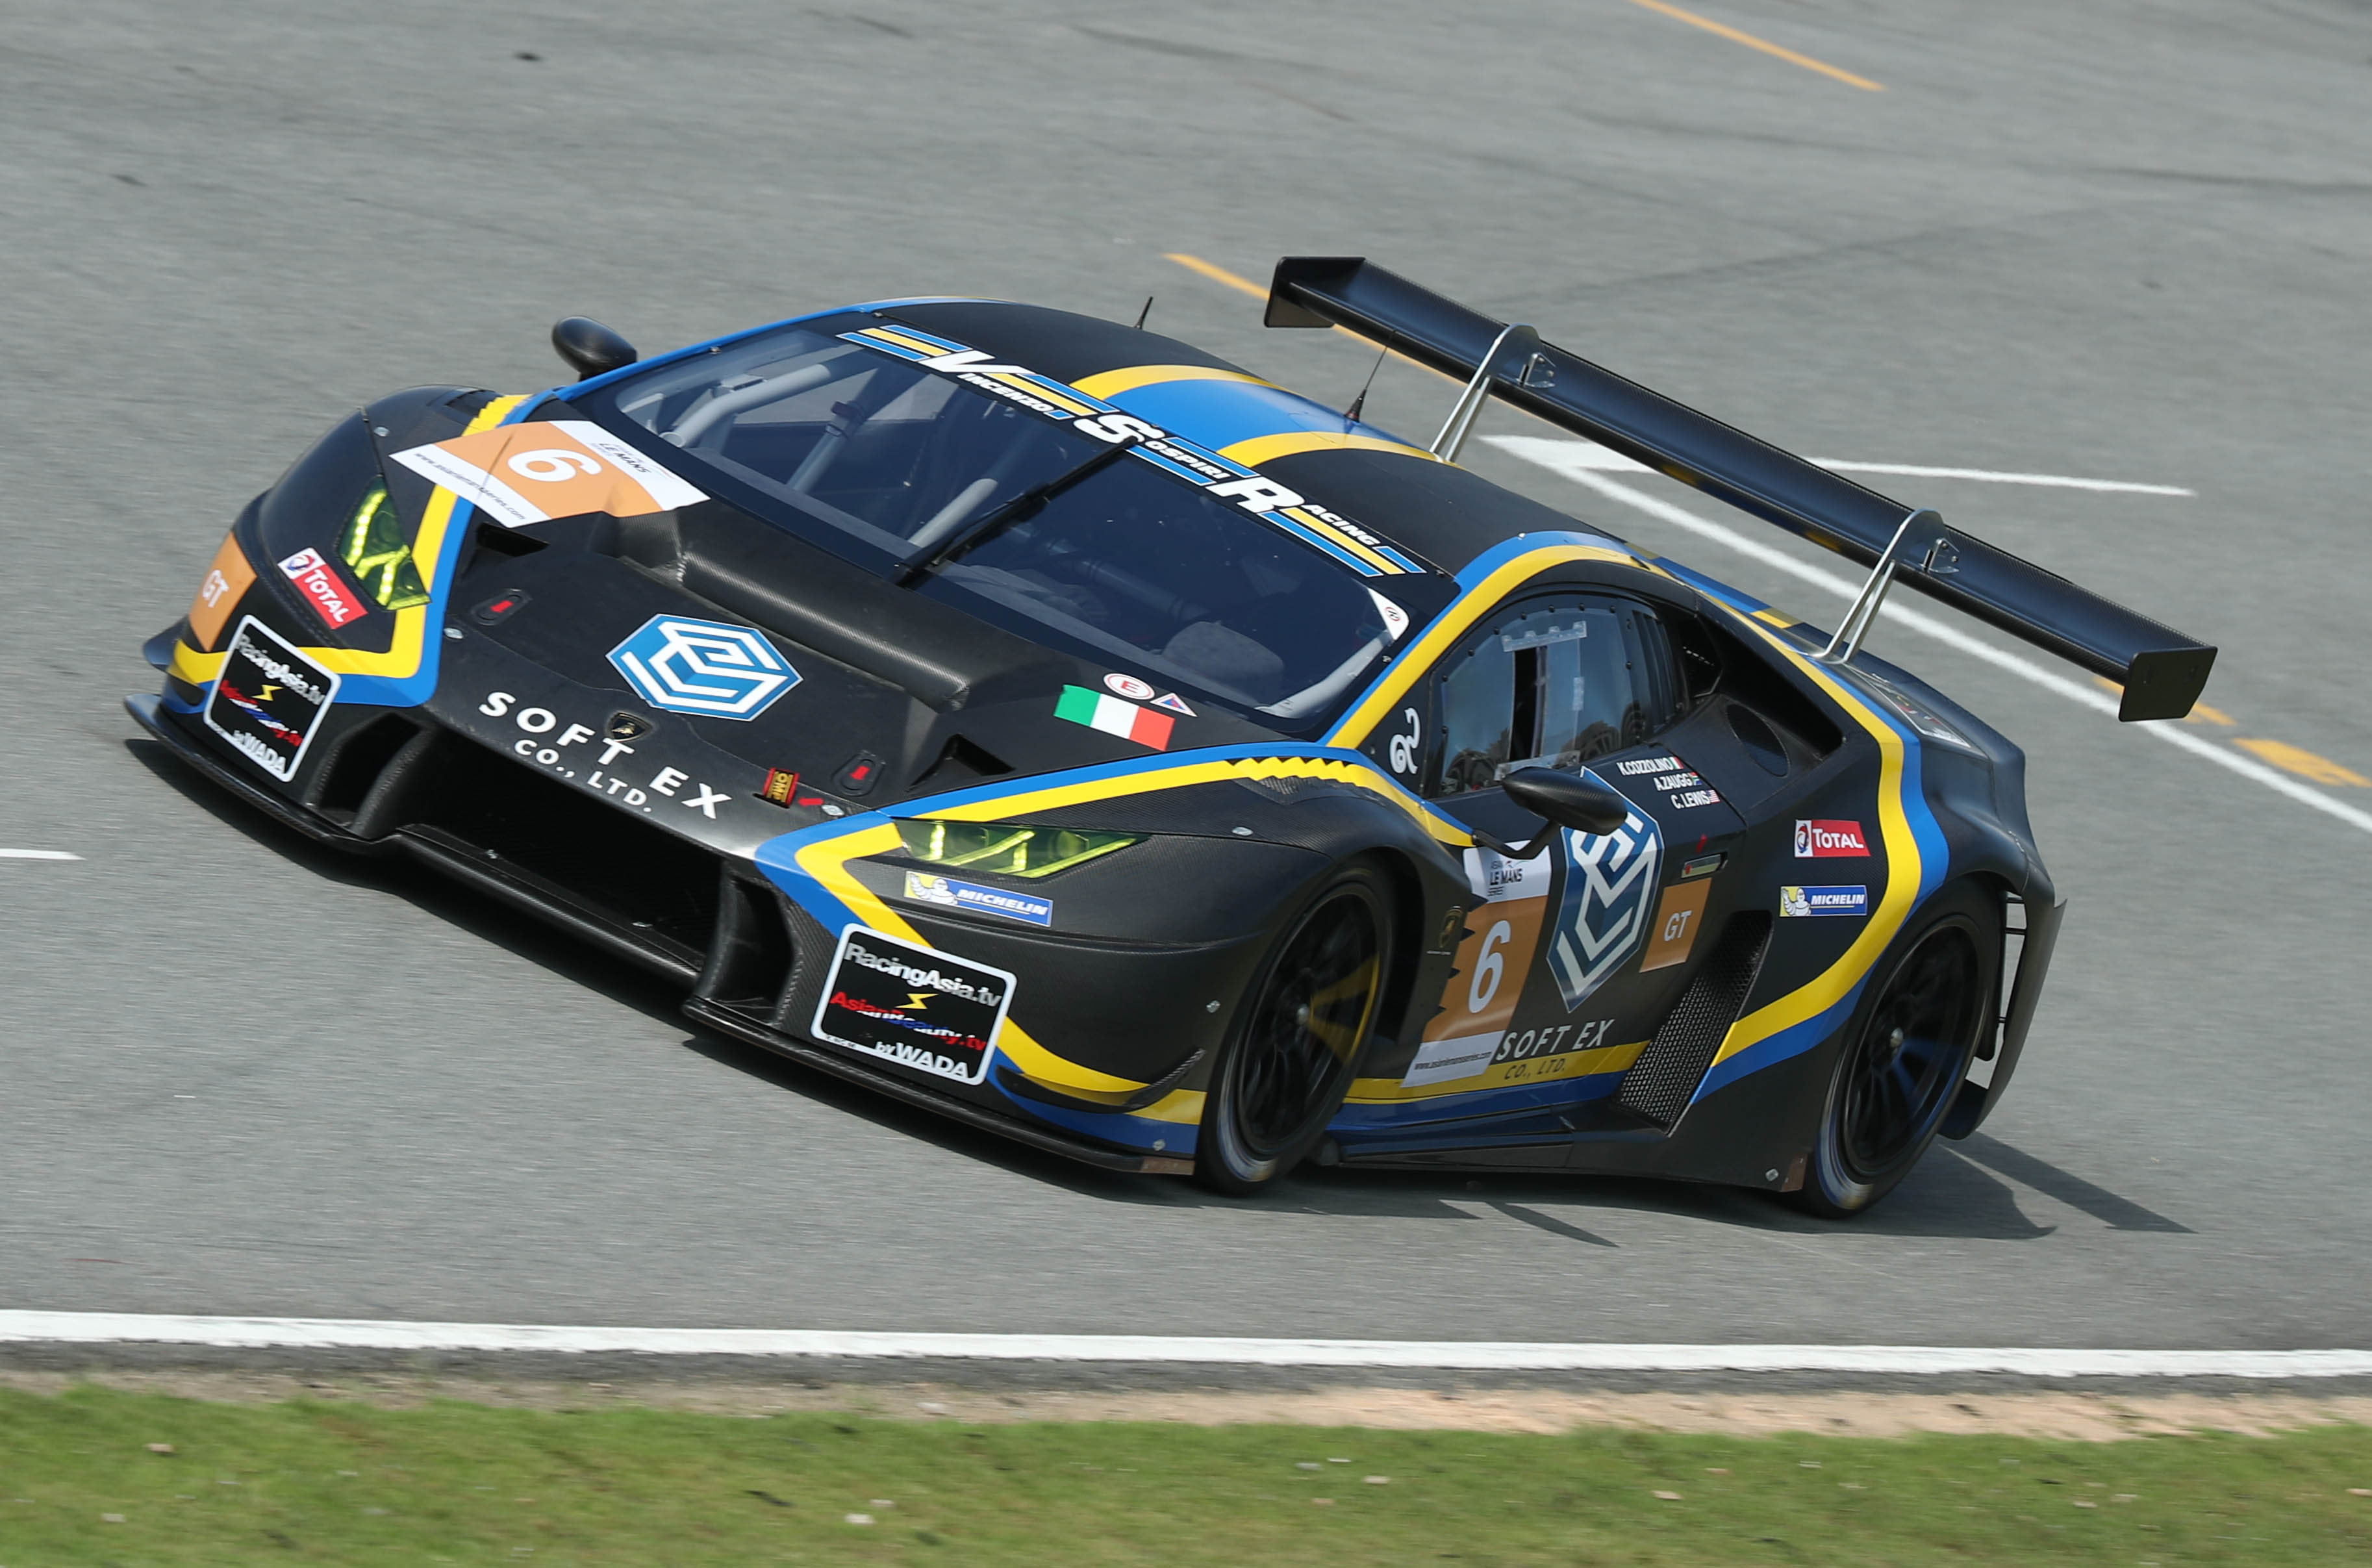 PODIUM IN ASIAN LE MANS SERIES DEBUT